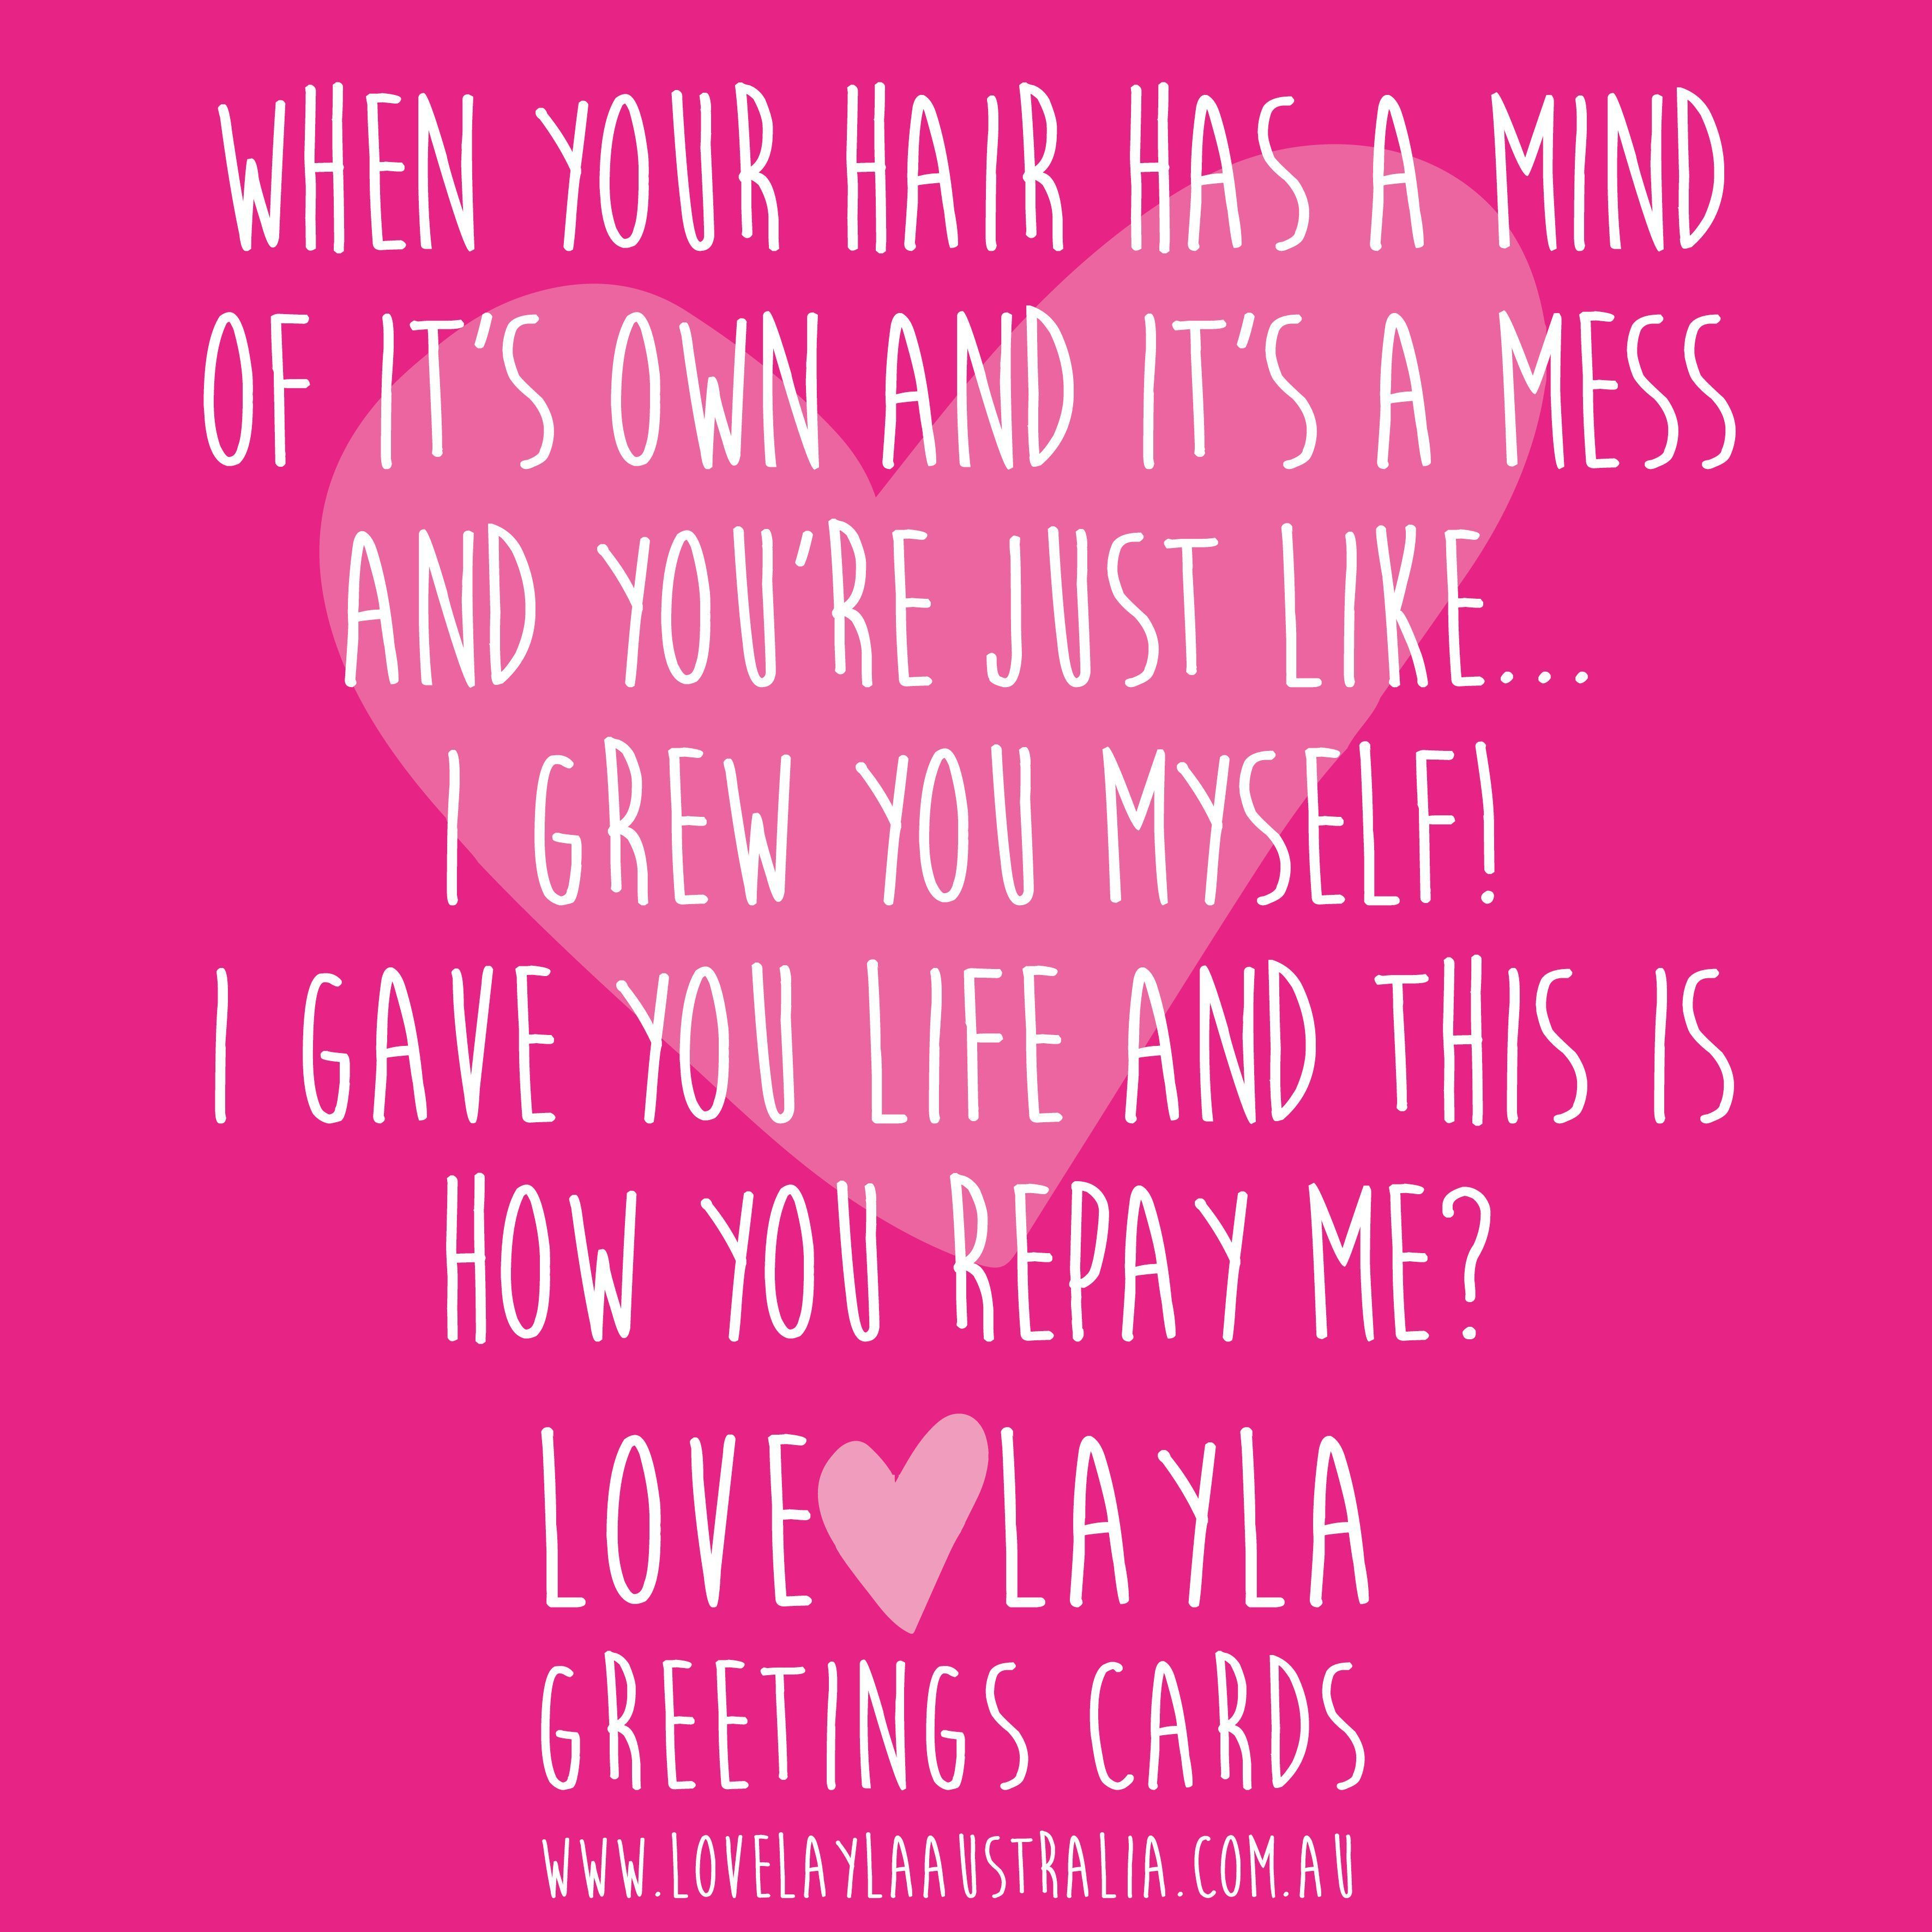 How dare you!  #badhairday #why #justdowhatyourtold #messybunlife #lovelaylaaustralia #greetingcards #funnycards #funny #meme #stayathomemum #workfromhomemum #birthdaymonthmeme How dare you!  #badhairday #why #justdowhatyourtold #messybunlife #lovelaylaaustralia #greetingcards #funnycards #funny #meme #stayathomemum #workfromhomemum #birthdaymonthmeme How dare you!  #badhairday #why #justdowhatyourtold #messybunlife #lovelaylaaustralia #greetingcards #funnycards #funny #meme #stayathomemum #work #birthdaymonthmeme